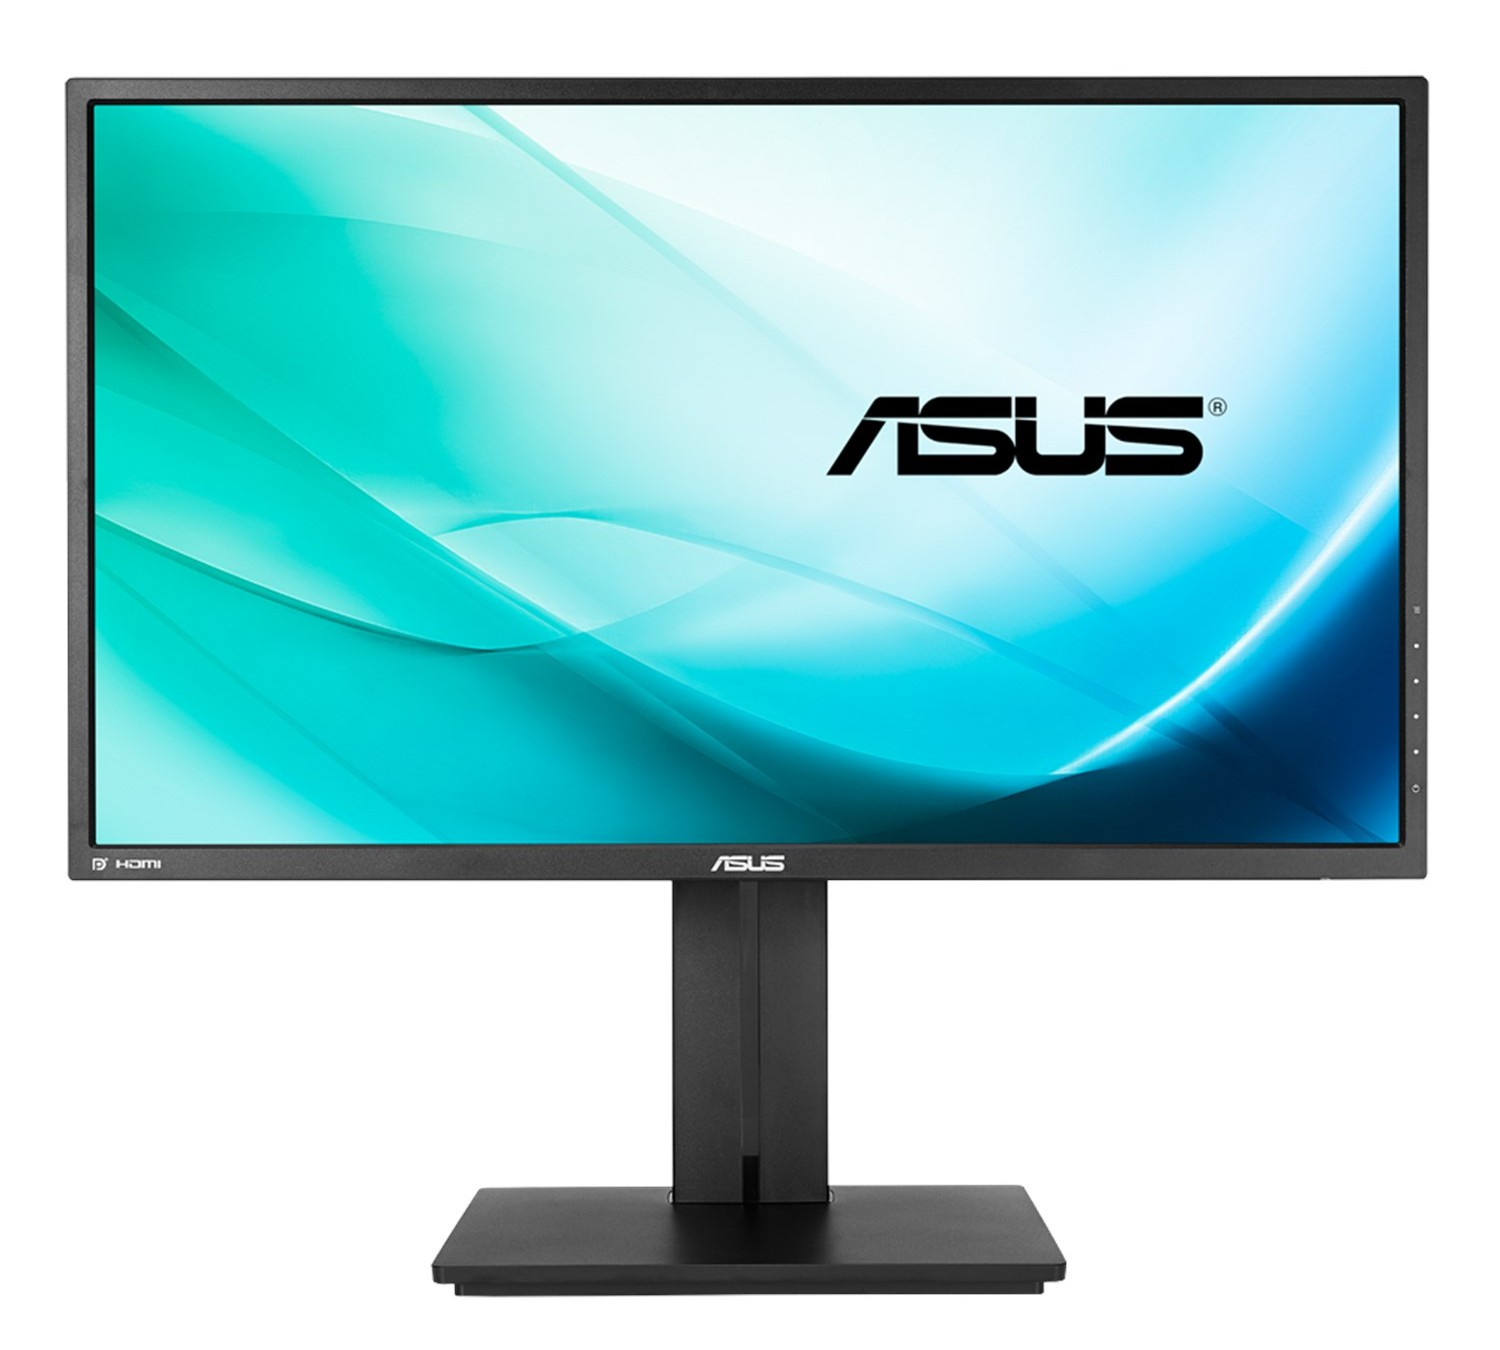 MONITOR 27 LED ASUS PB277Q 2560X1440 VGA HDMI DISPLAYPORT GAMING 2X2W PIVOTANTE